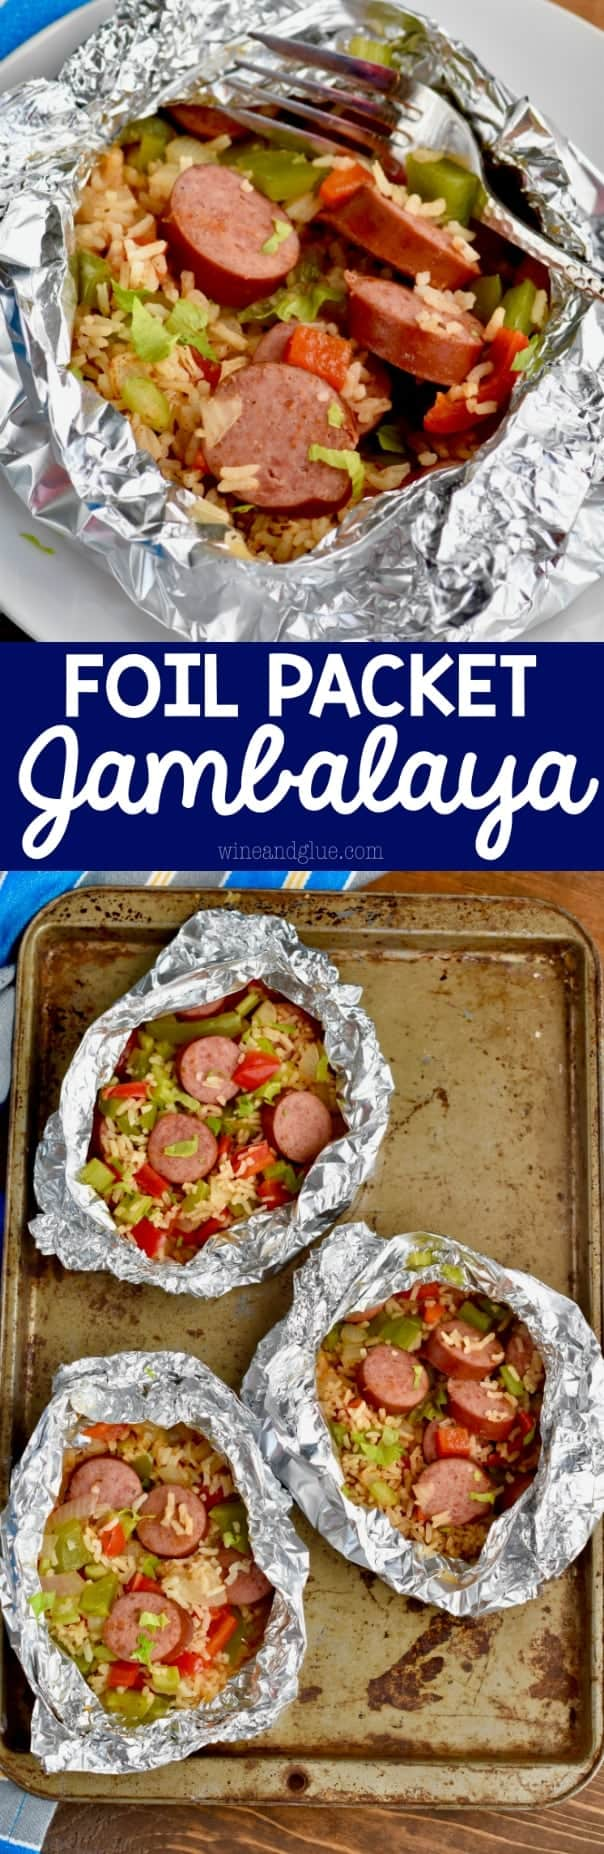 This Foil Packet Jambalaya Dinner is only 30 minutes start to finish and is so full of delicious flavor! Make it on the grill or in the oven!